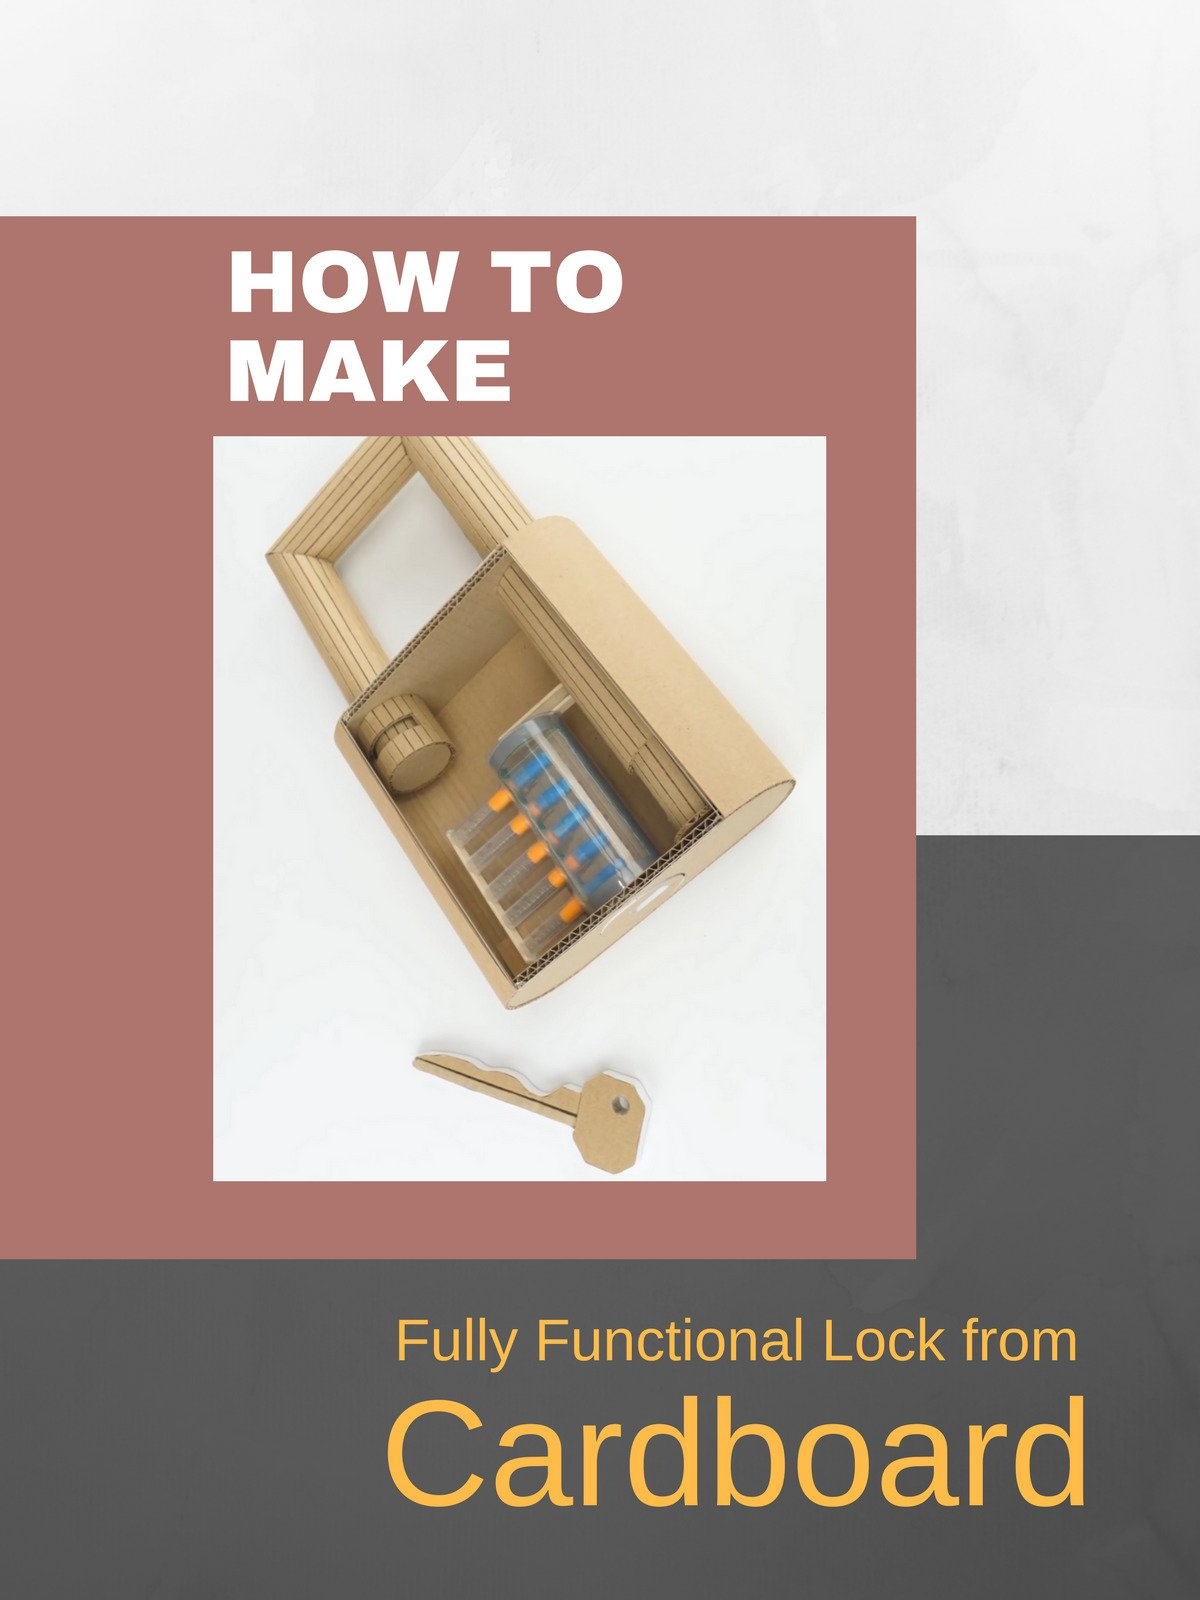 How to Make Fully Functional Lock from Cardboard on Amazon Prime Instant Video UK